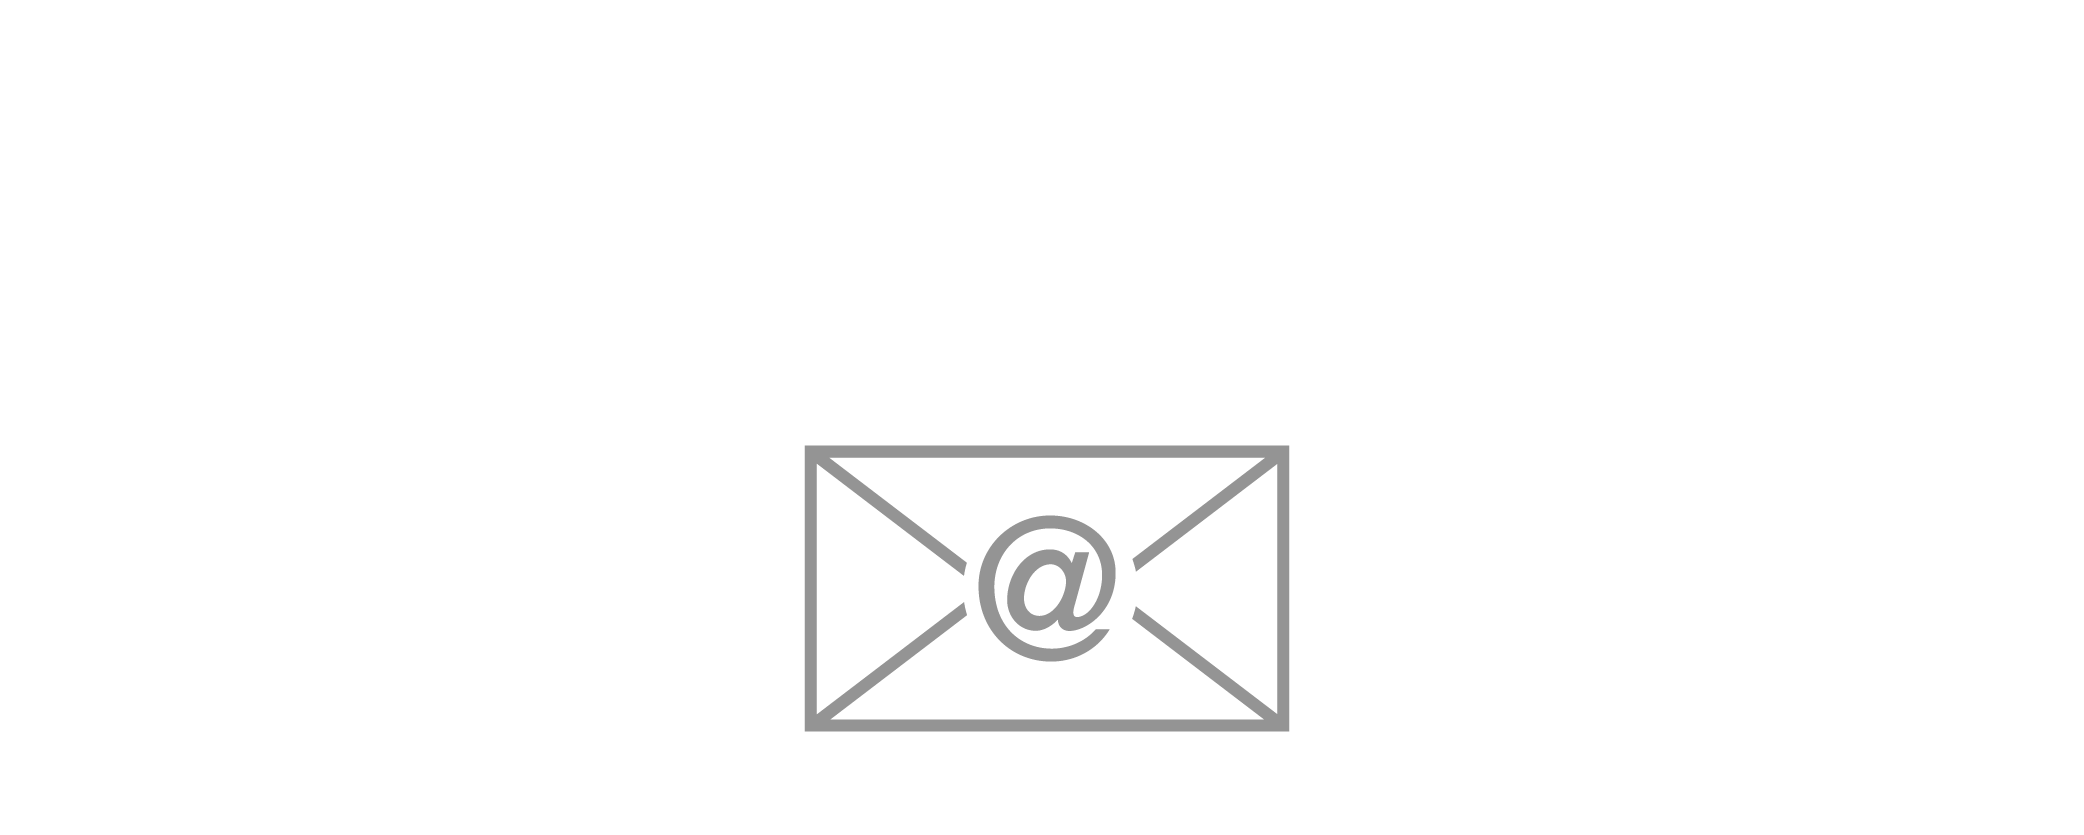 Website_Icons-16.png